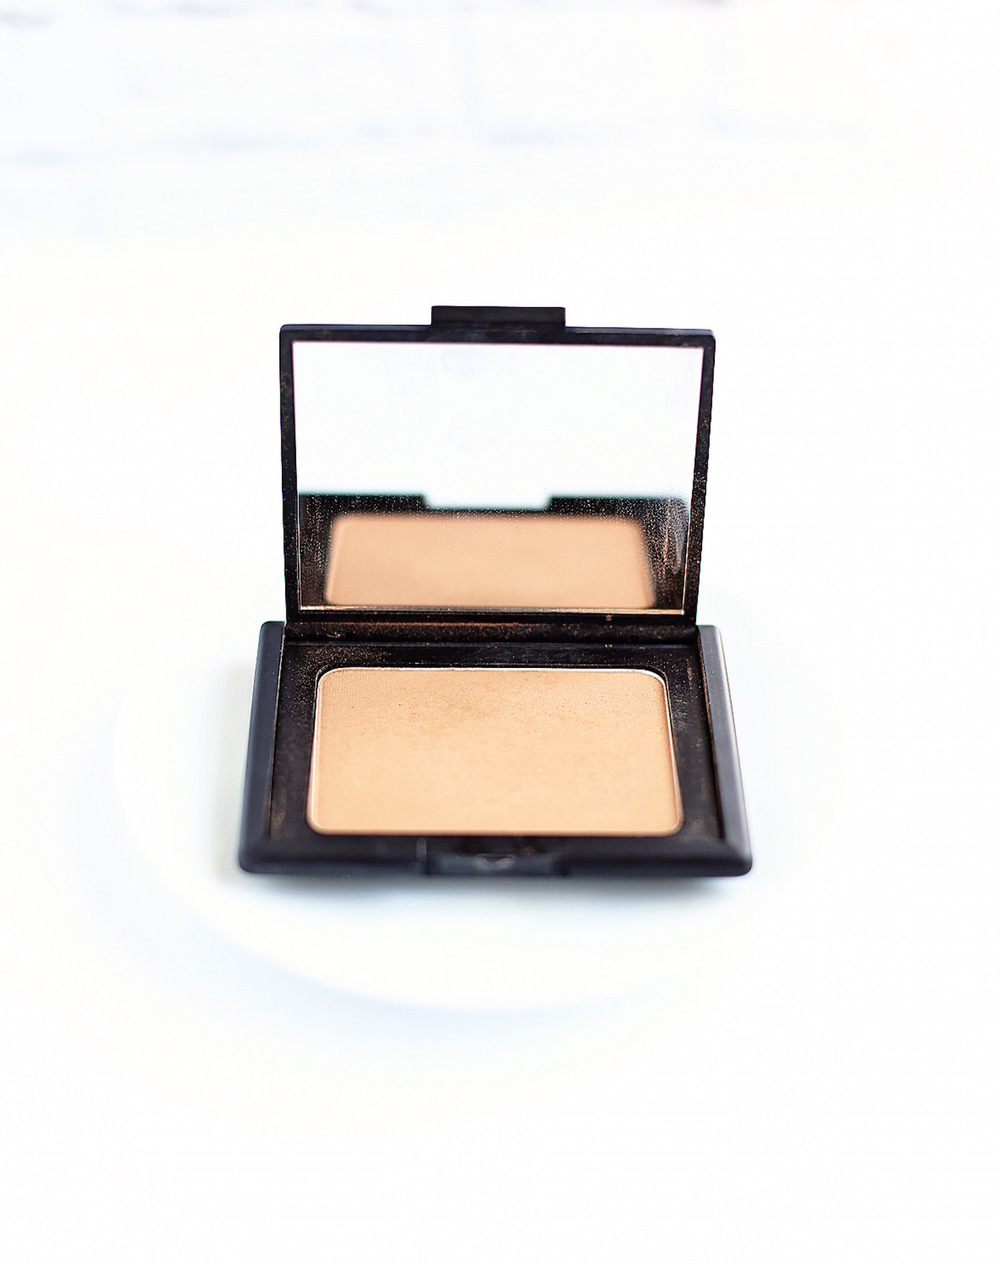 My 10 New Favorite Beauty Products - Nars Bronzer | TrufflesandTrends.com